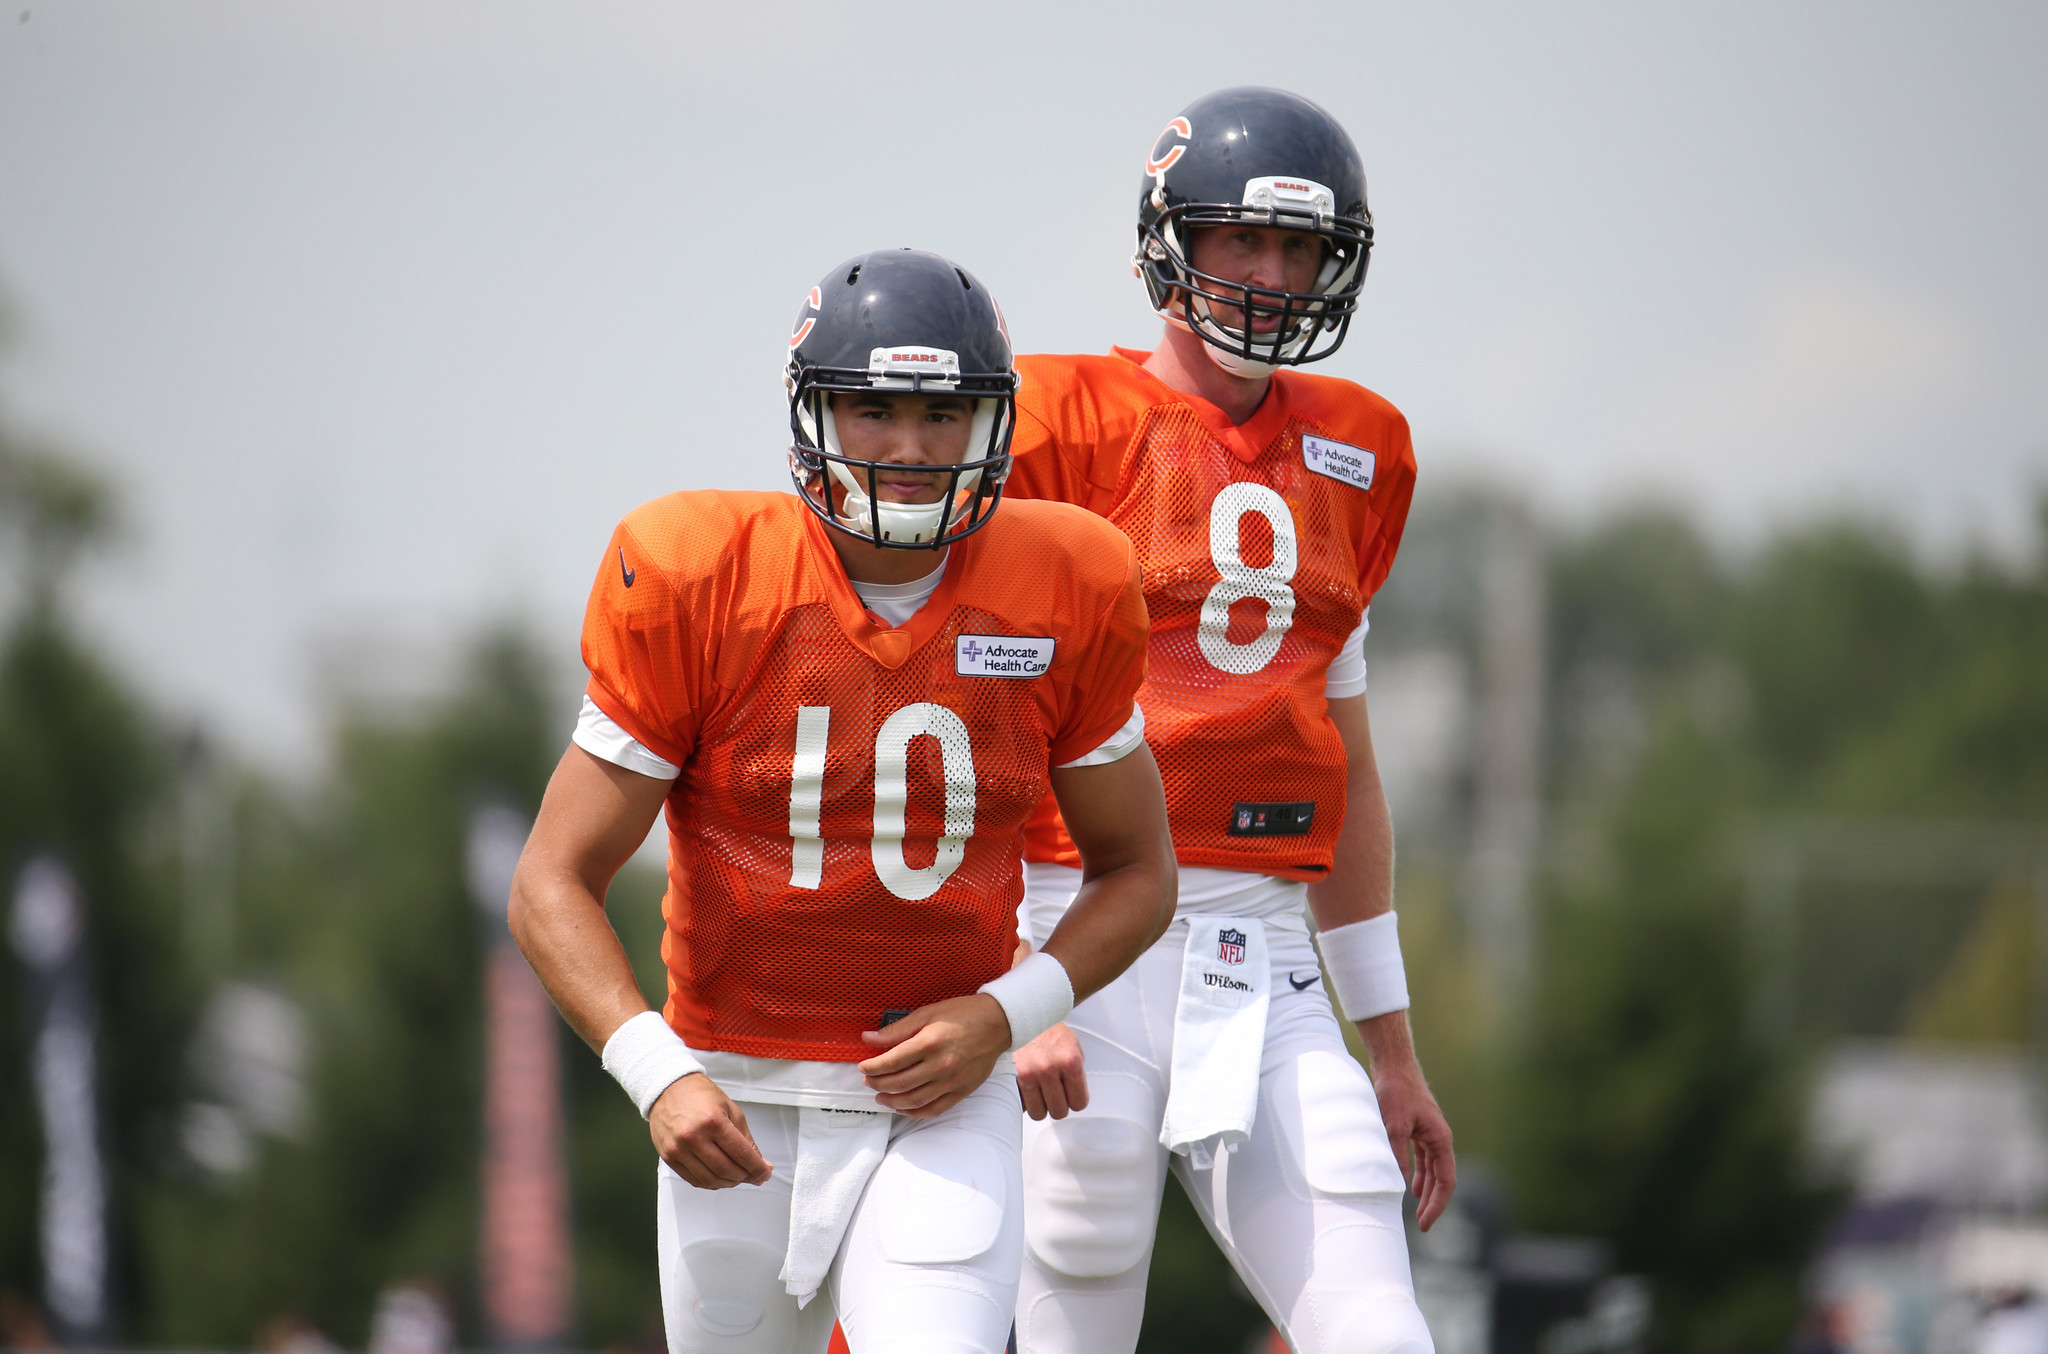 timeless design ec9a1 740ef The Bears, the Browns, and Filling the Quarterback Position ...